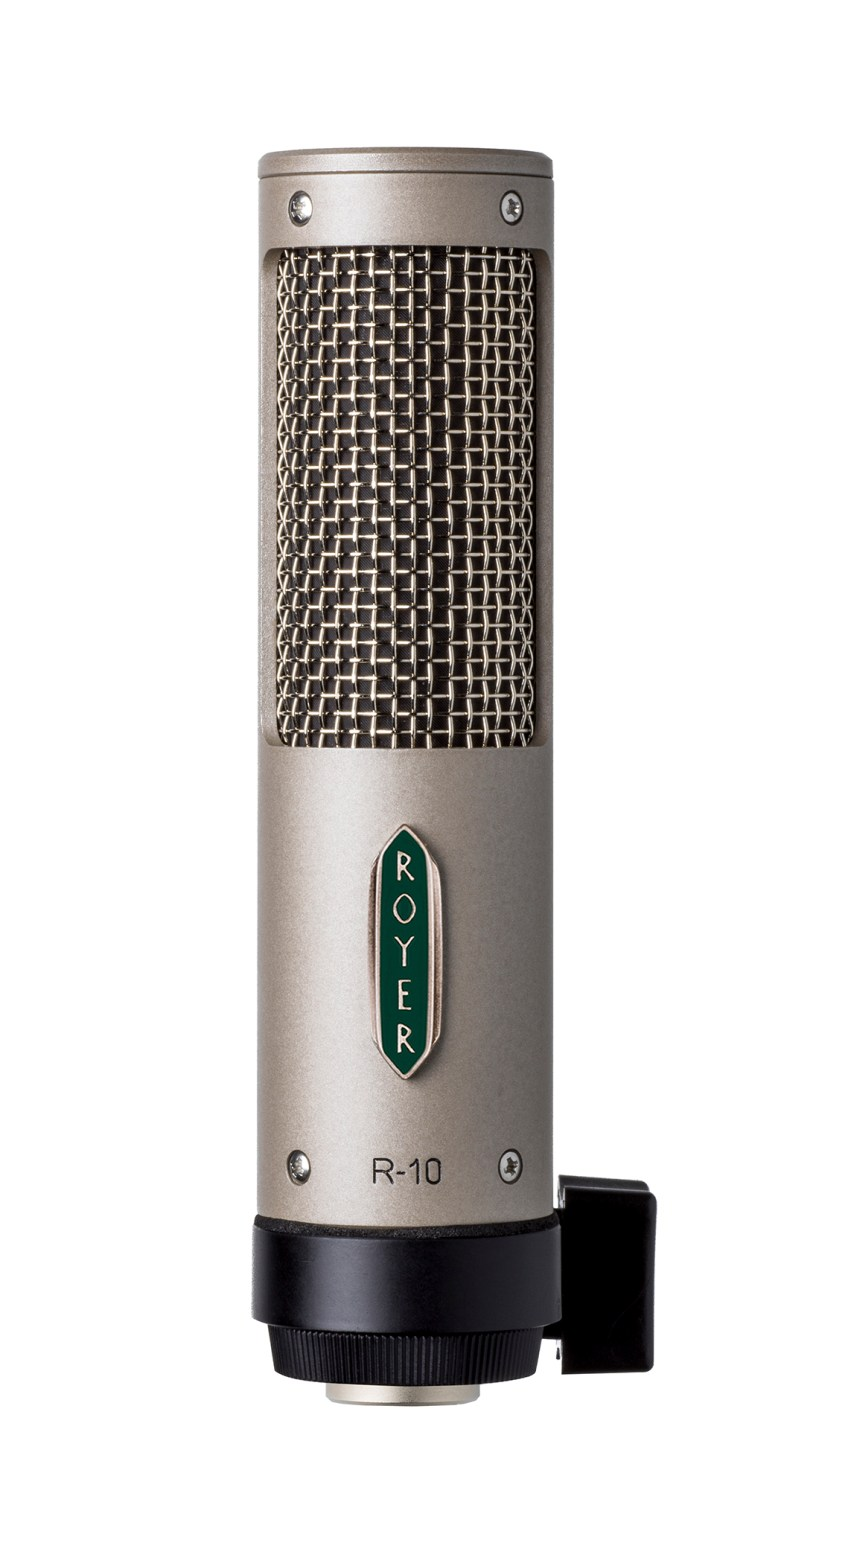 Royer Labs Announces R-10 Ribbon Microphone